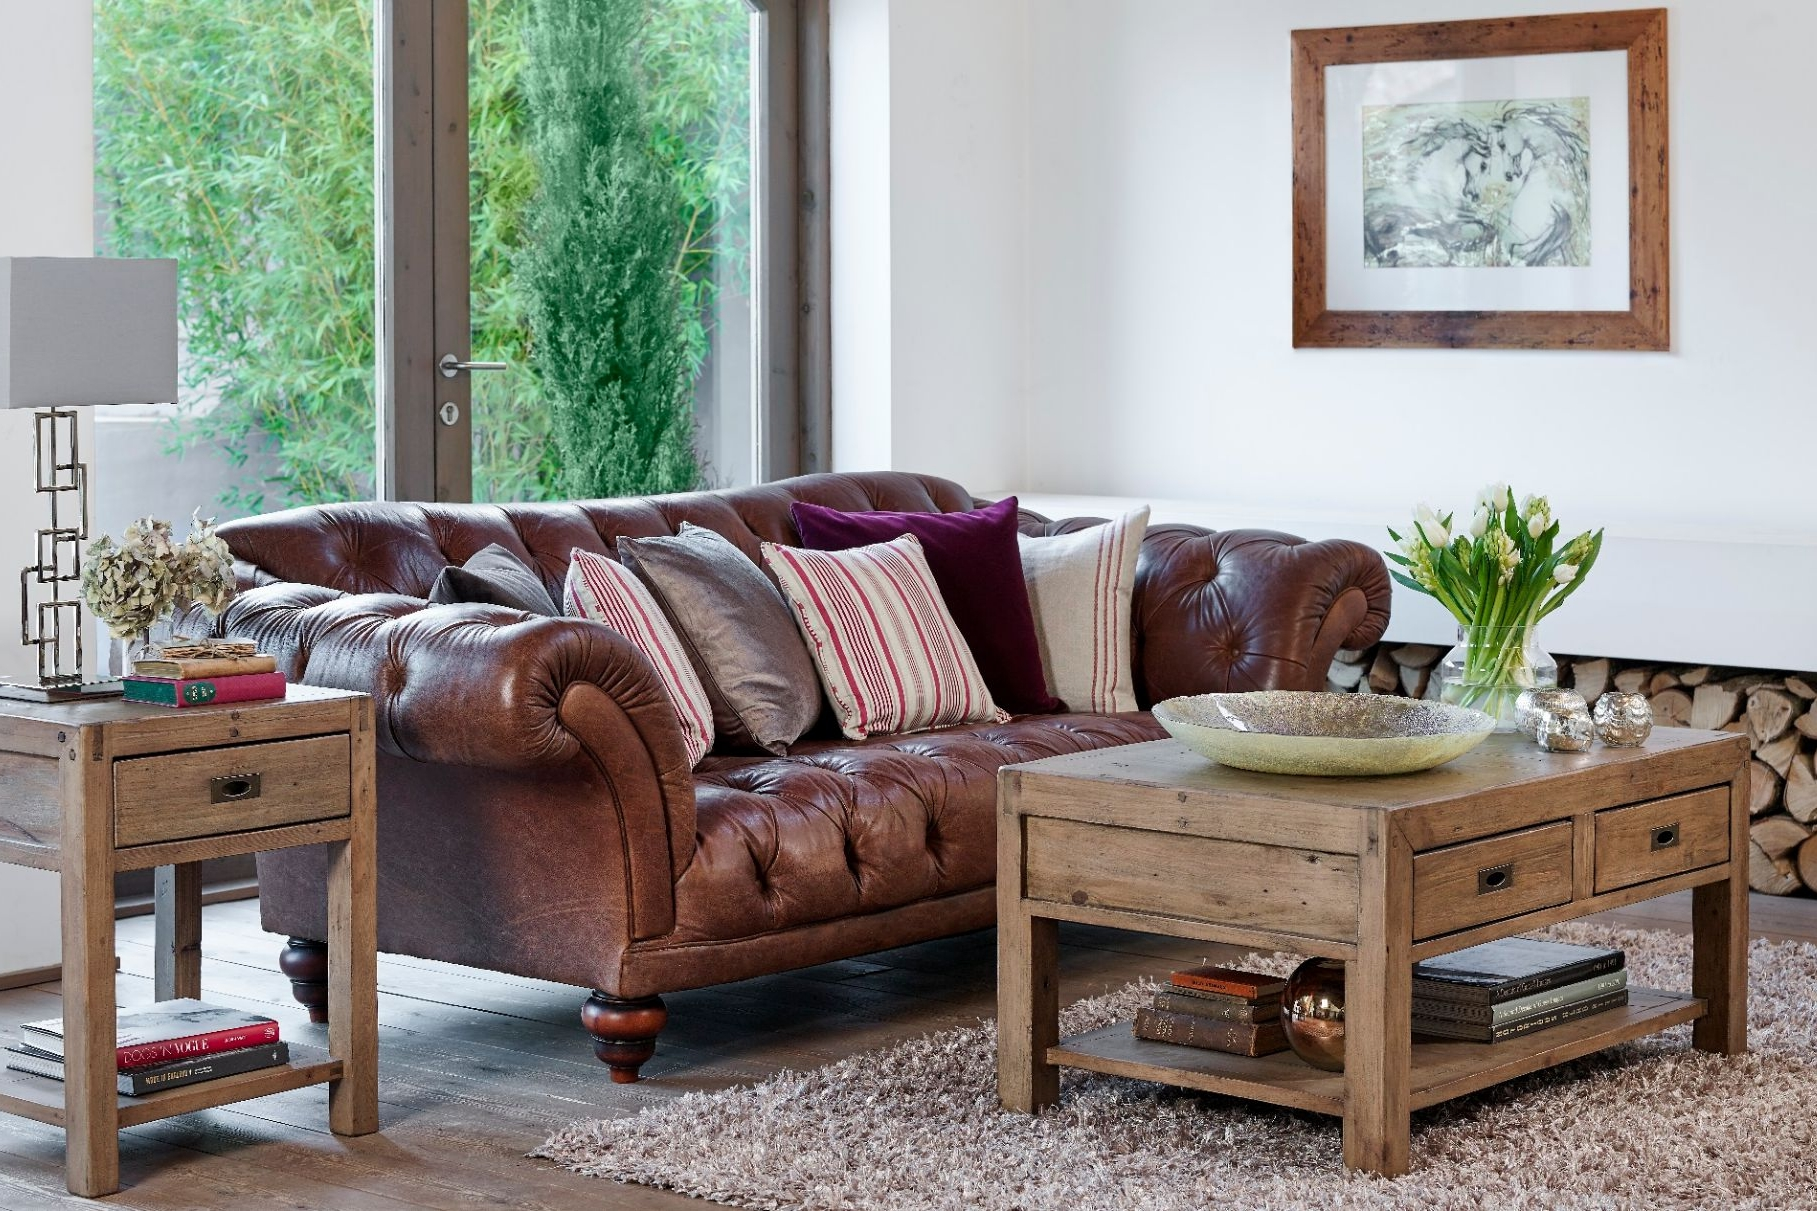 Toscana Living Reclaimed Solid Wood